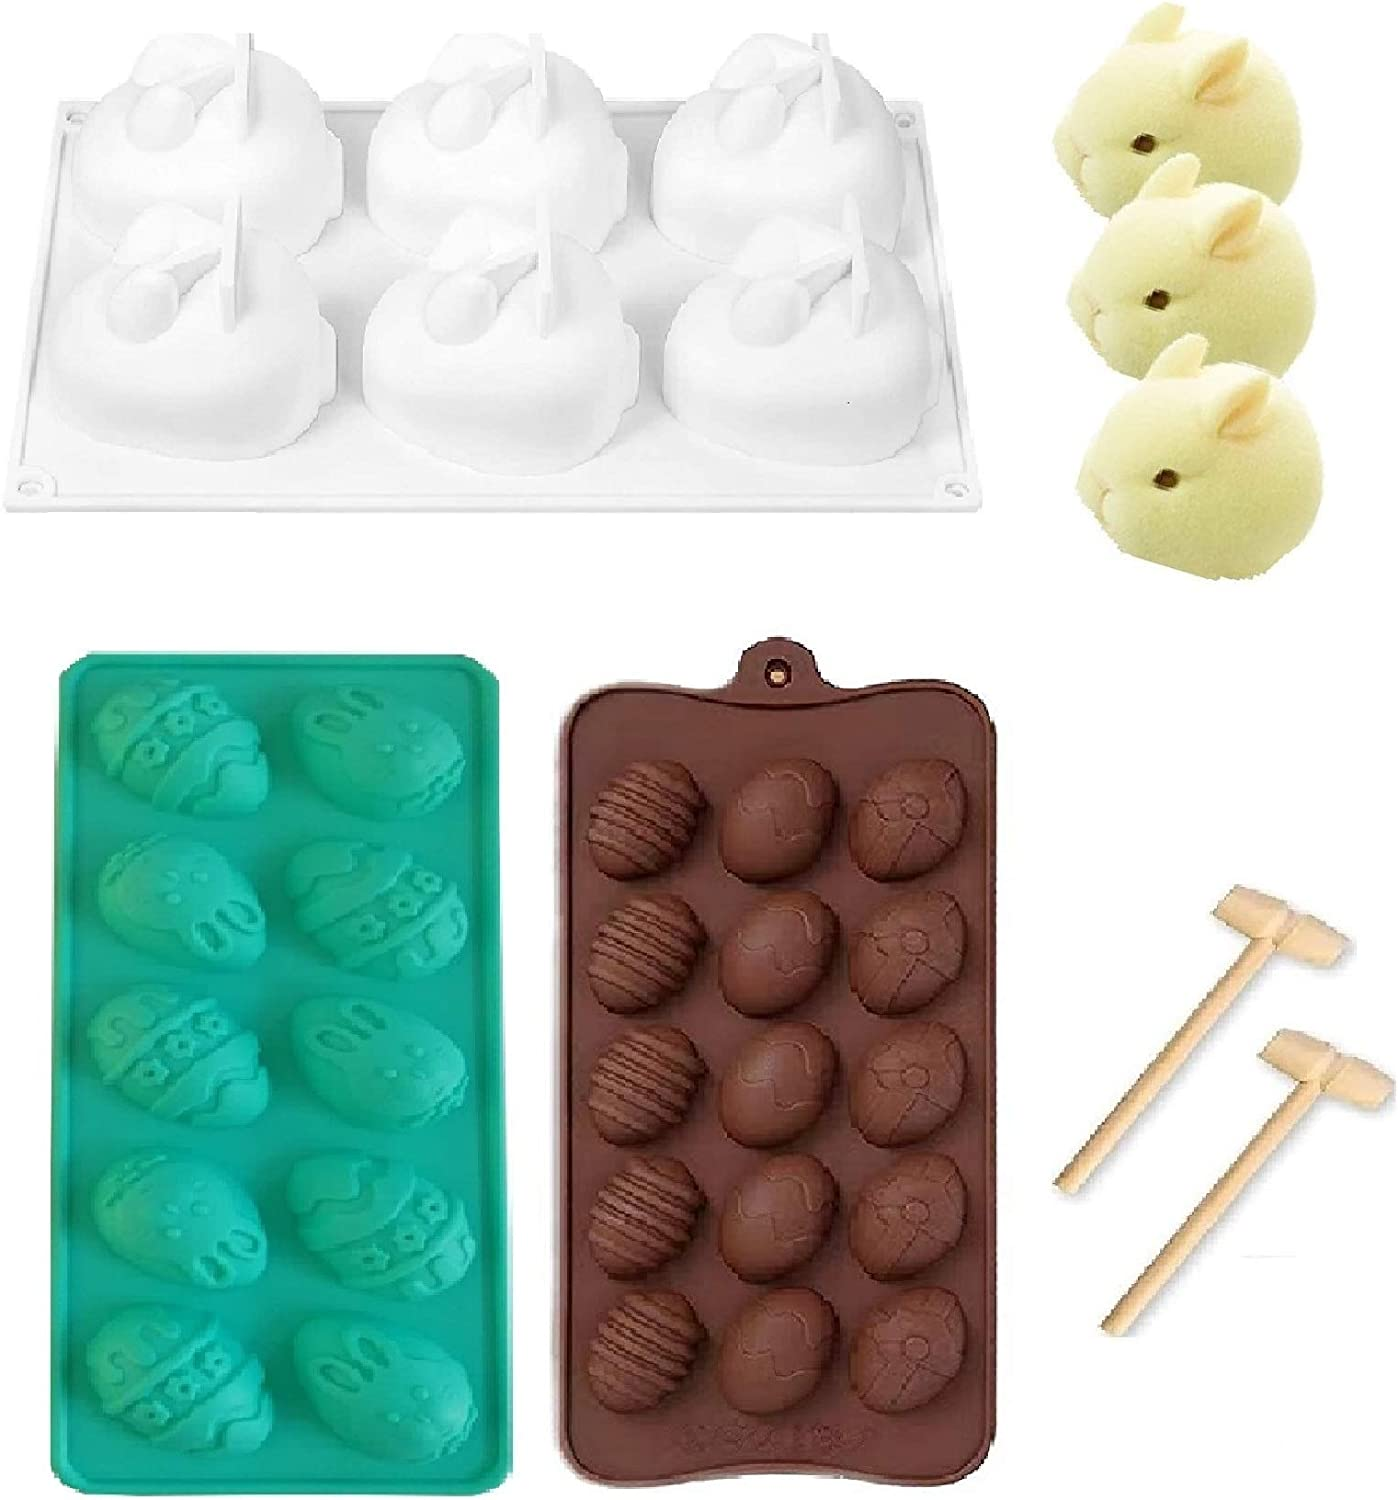 Easter Egg Shaped Silicone Cake Mold and Easter Bunny Egg Shaped Molds Rabbit Cake Molds Set Trays Cooking Supplies for Chocolate, Candies, Ice Cube Trays Baking Molds (c)